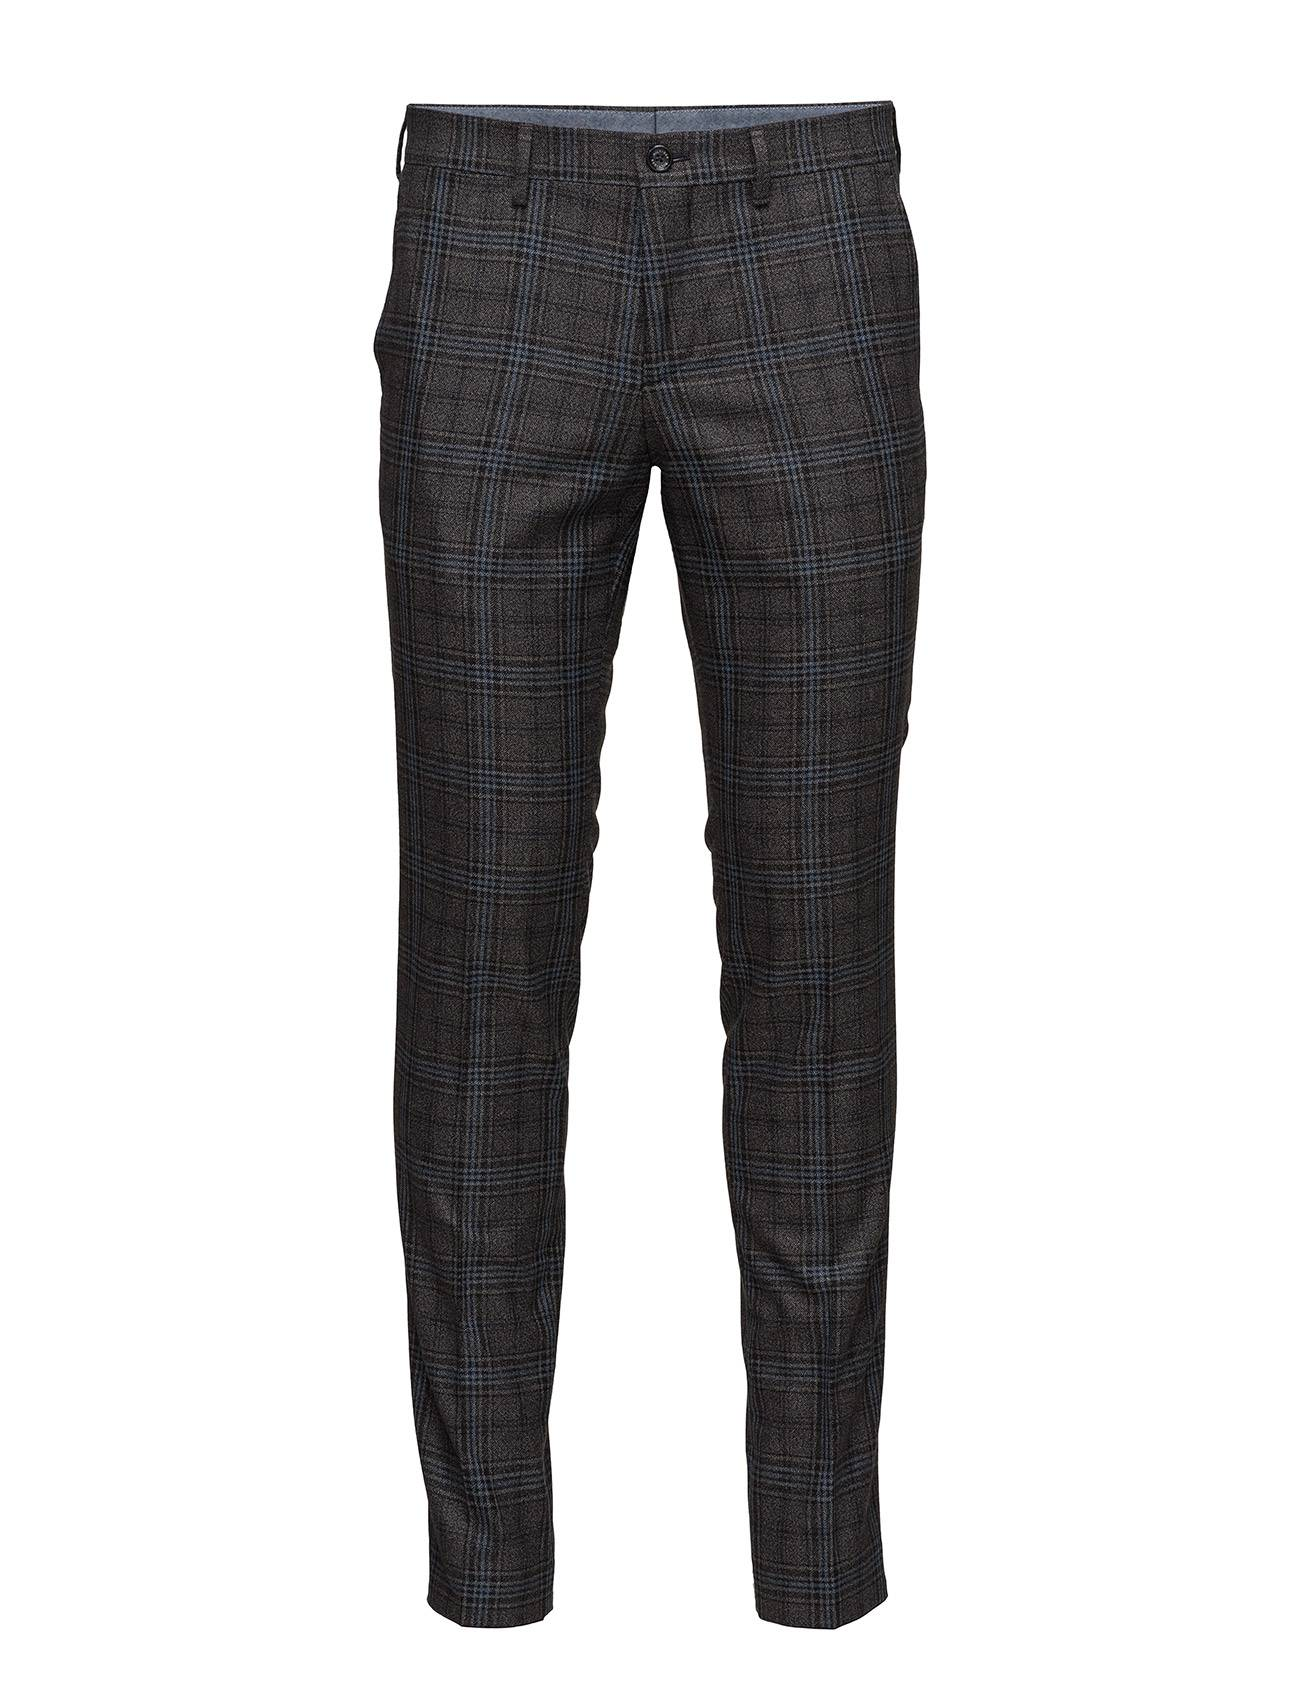 Tommy Hilfiger Tailored Crs Twschk18103, 54